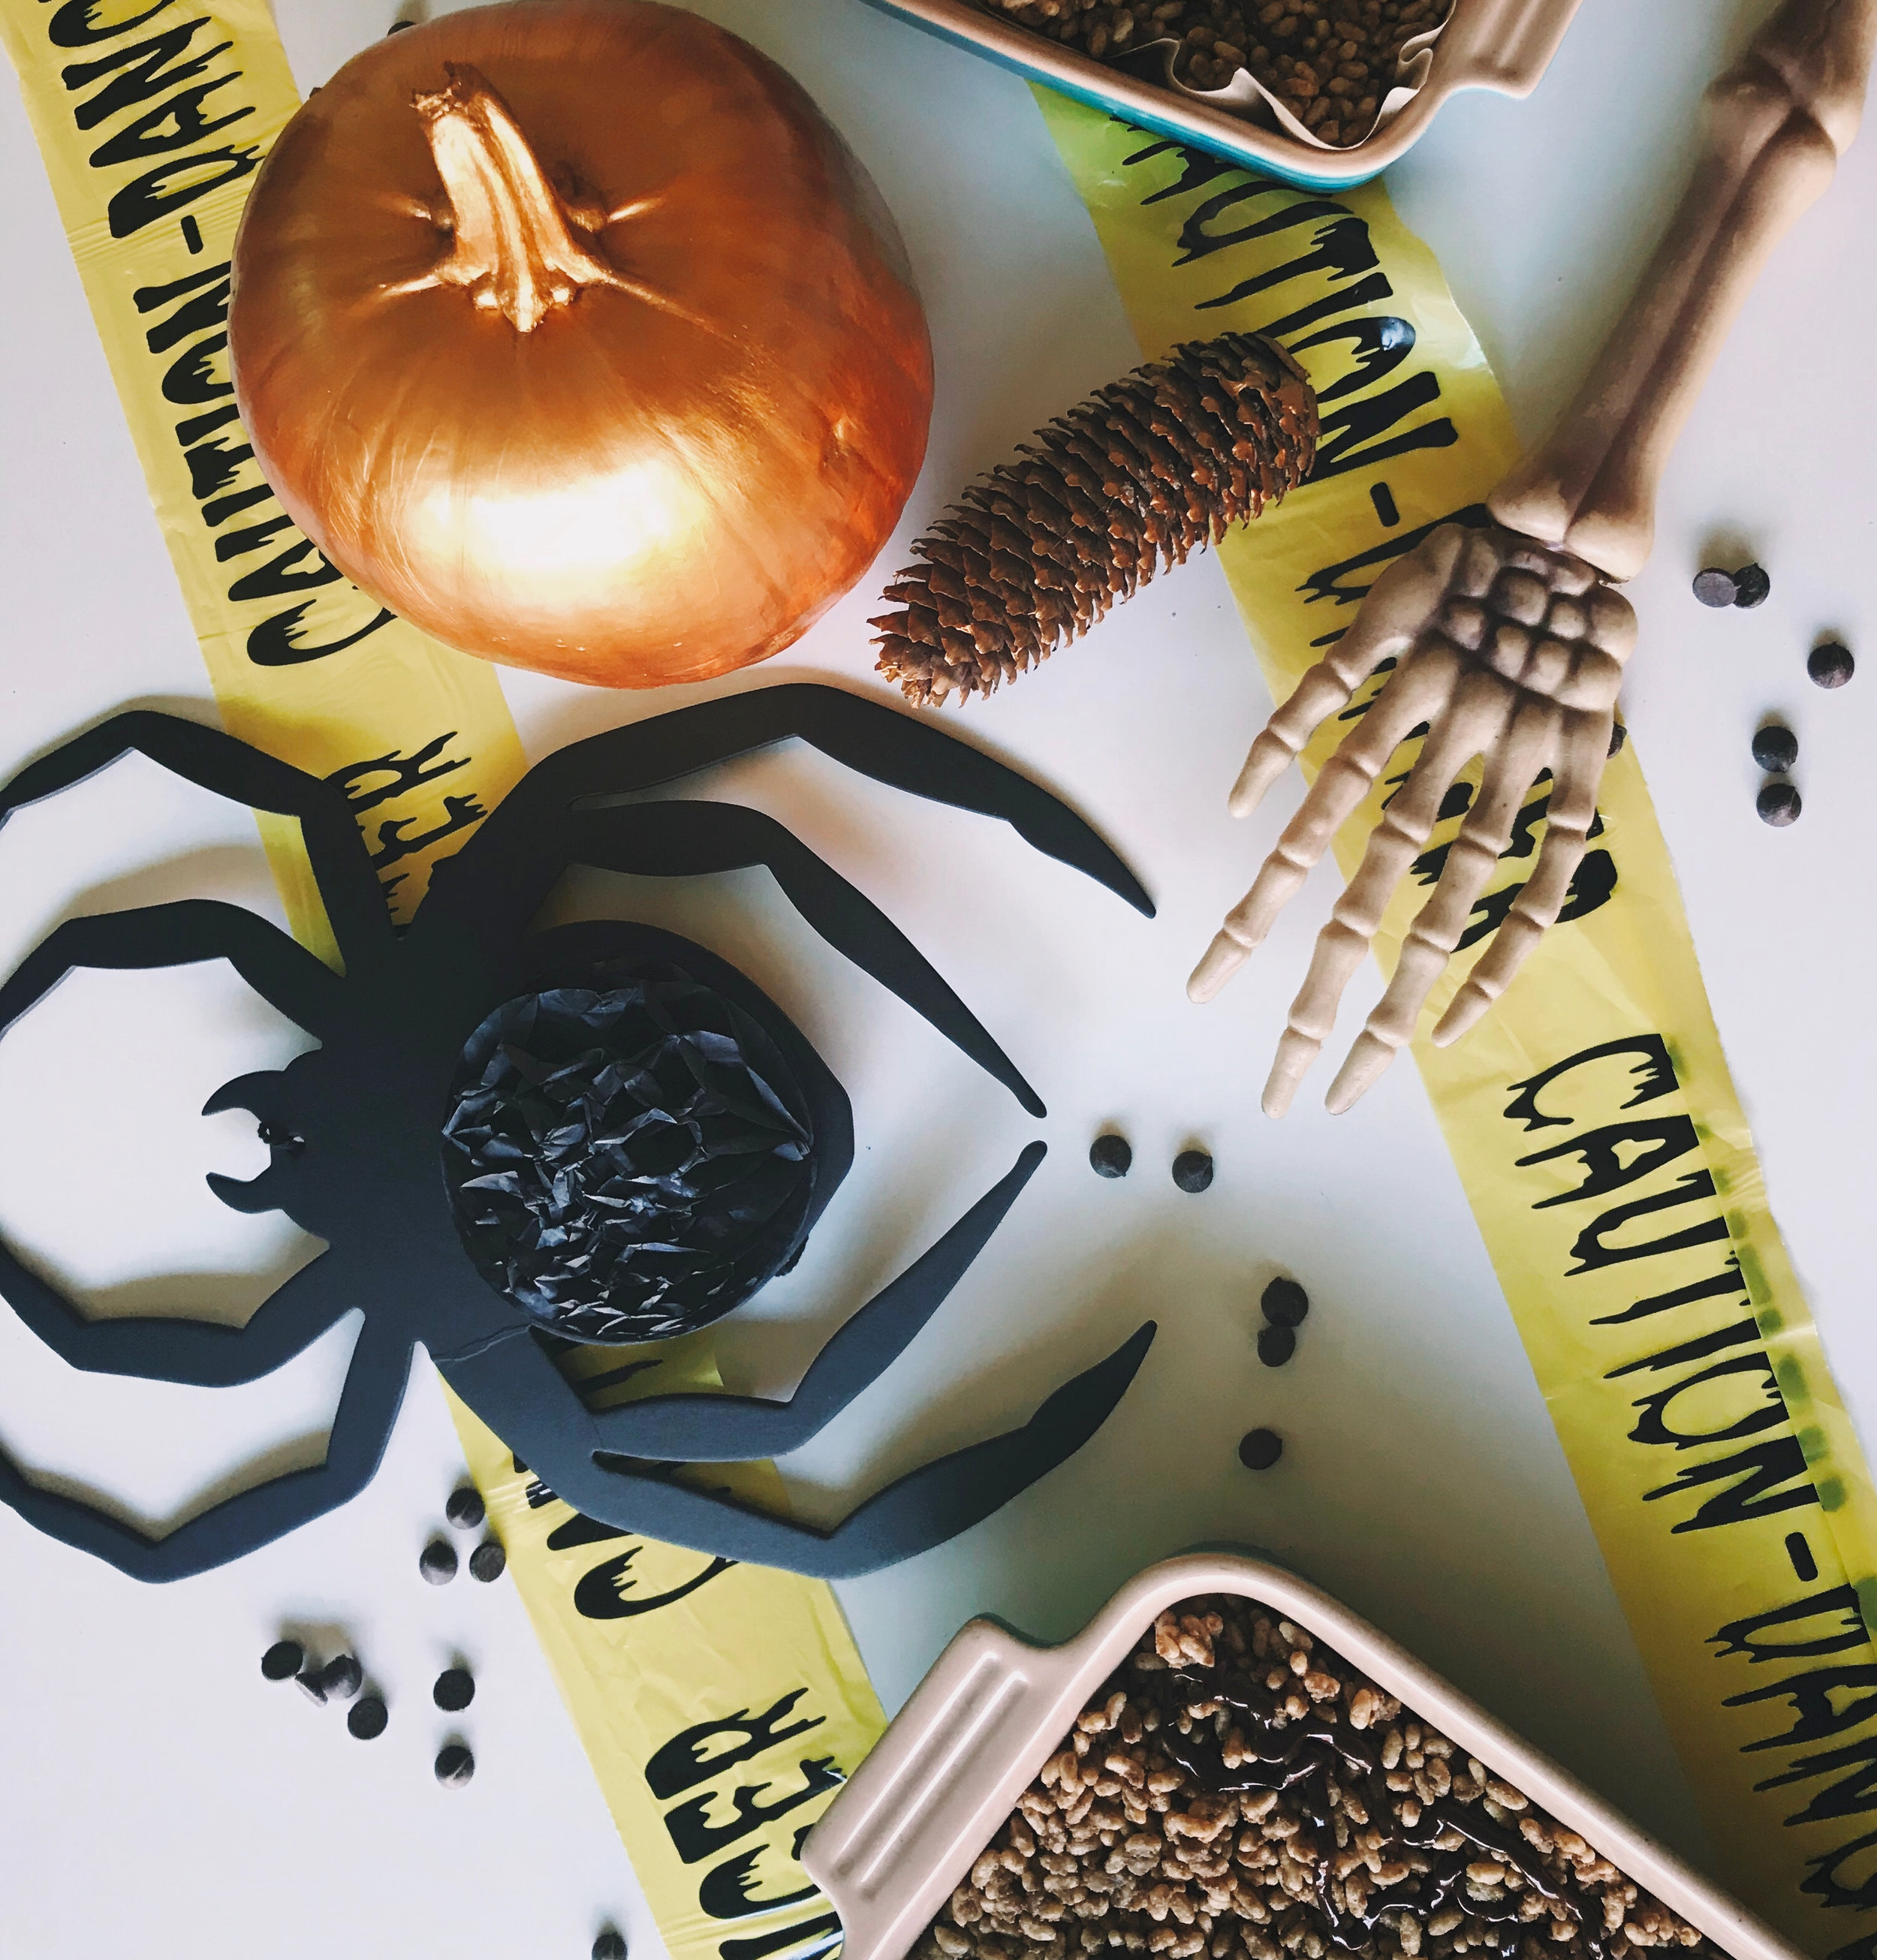 It's getting close to Halloween - we have rounded up some fun activities AND healthy treats for kids ages 2 and up!